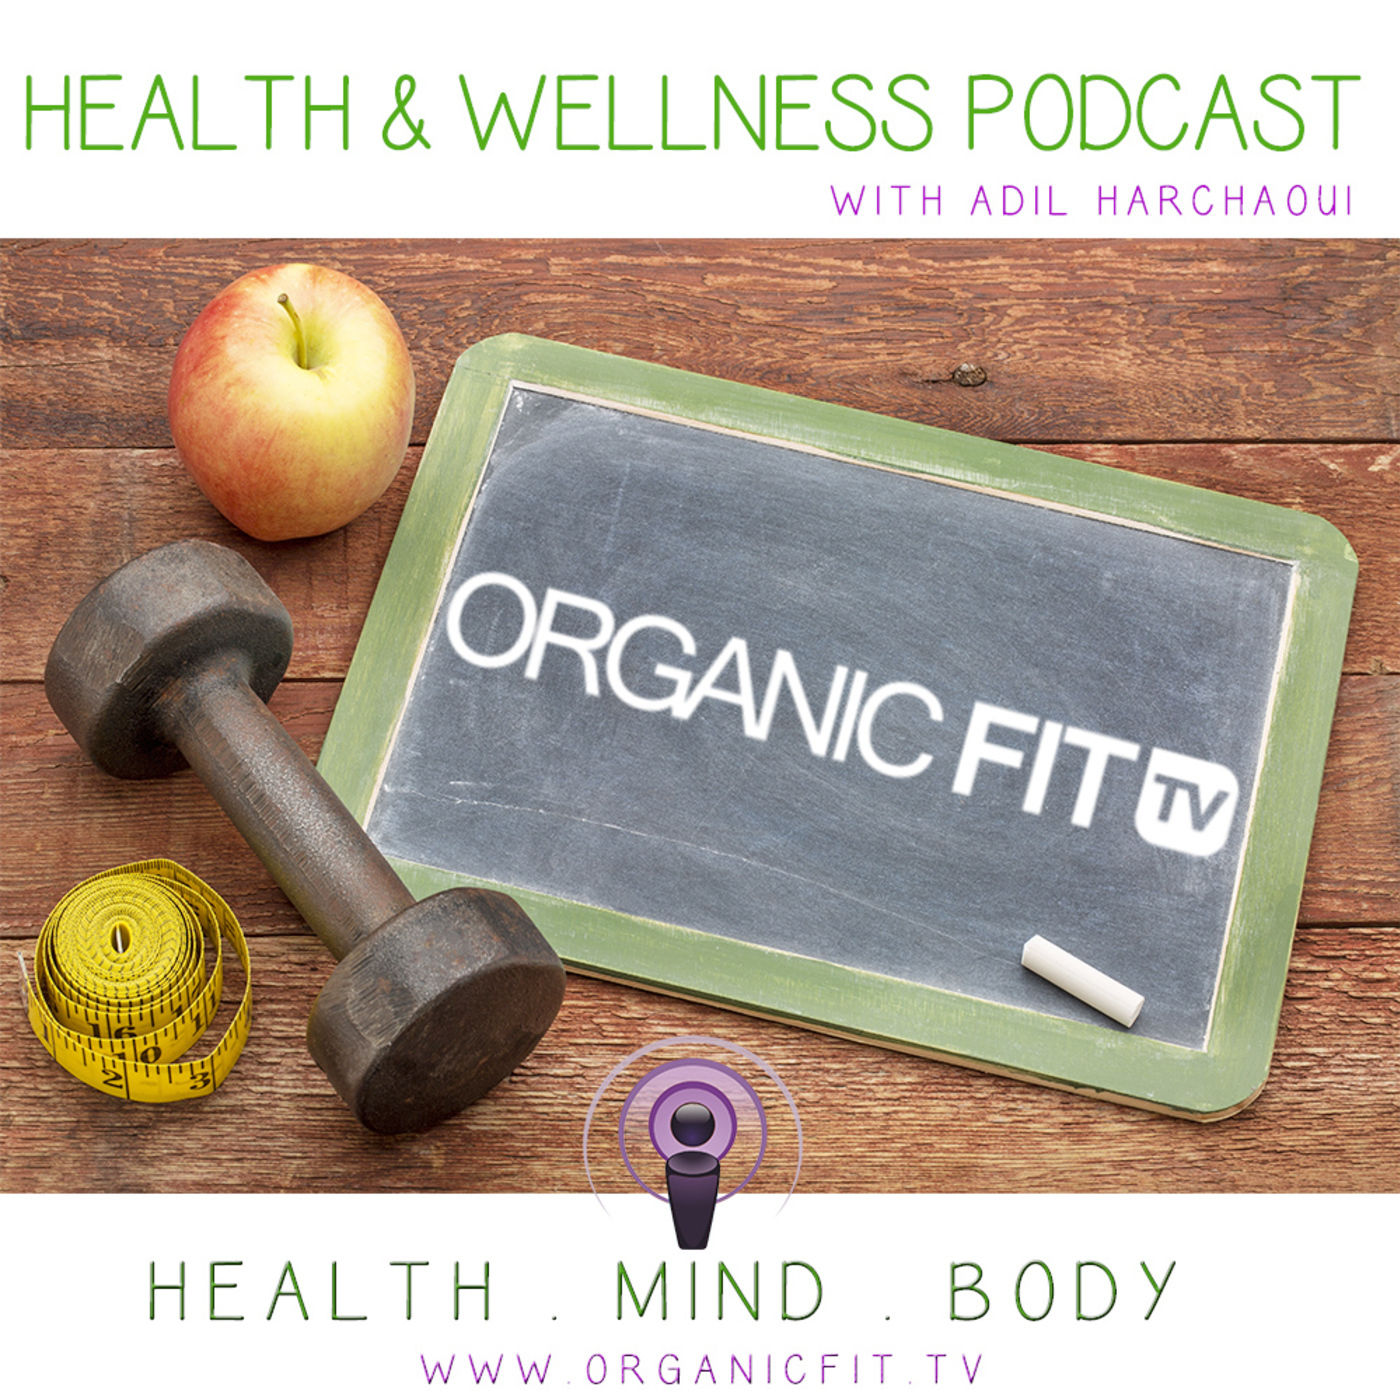 Organic Fit Tv Health & Wellness Podcast With Adil Harchaoui - Weight Loss, Fit Lifestyle, Personal Development, Mindset, Organic fit